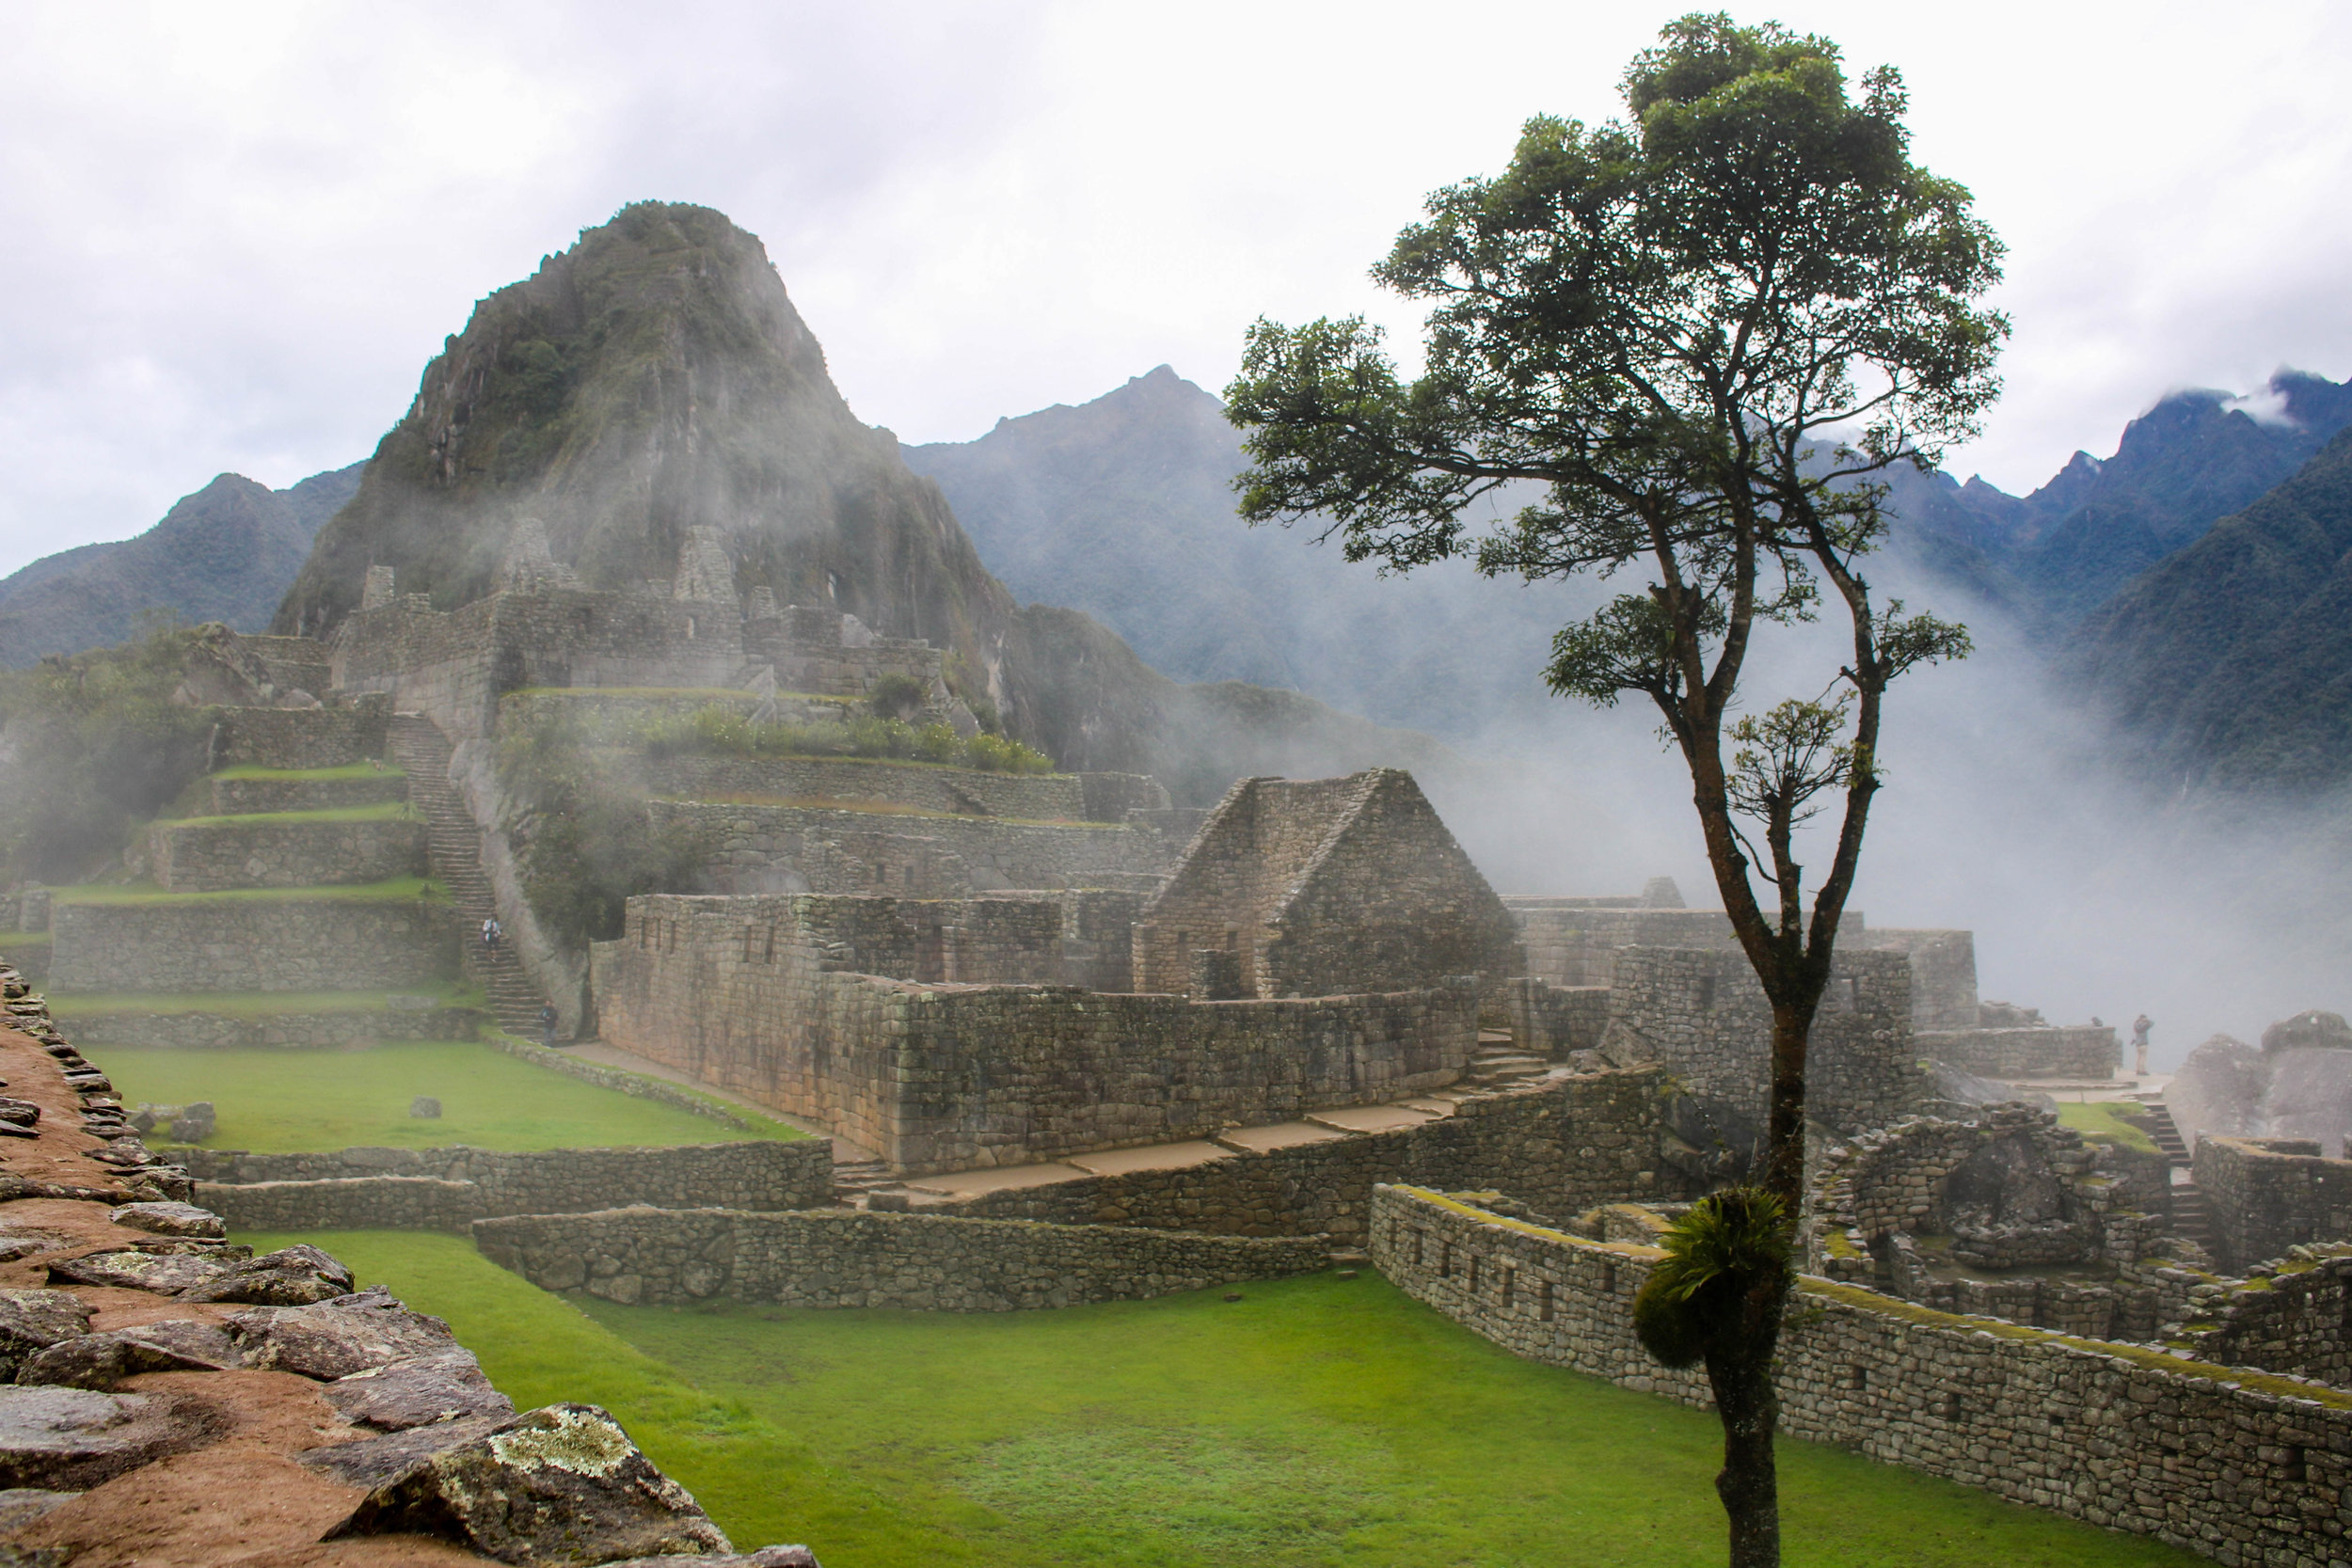 Misty Morning at Machu Picchu in Peru